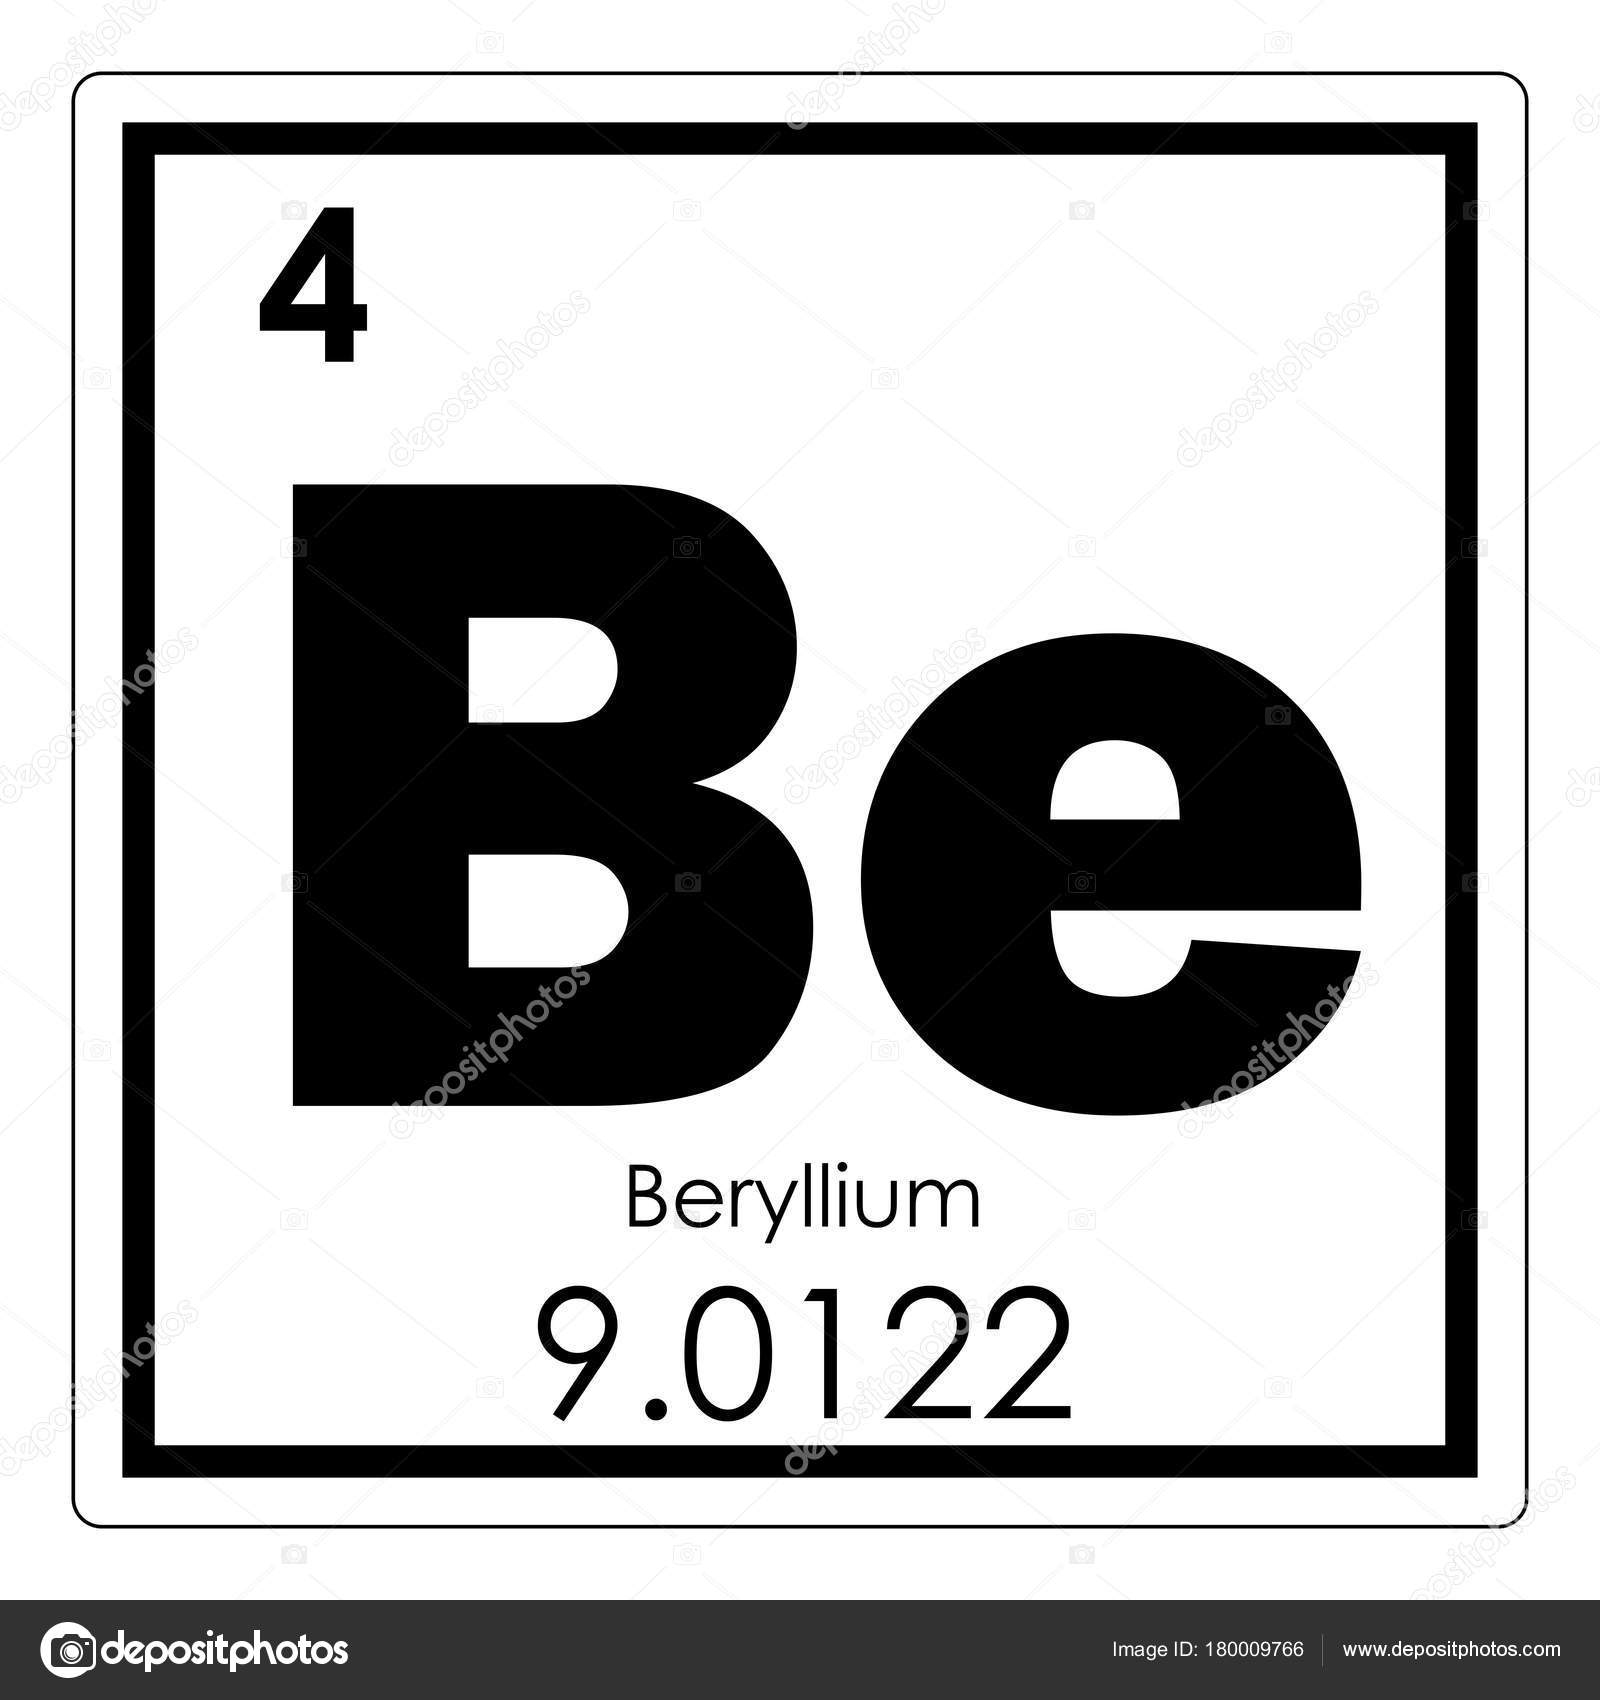 Beryllium chemical element stock photo tony4urban 180009766 beryllium chemical element periodic table science symbol photo by tony4urban urtaz Image collections